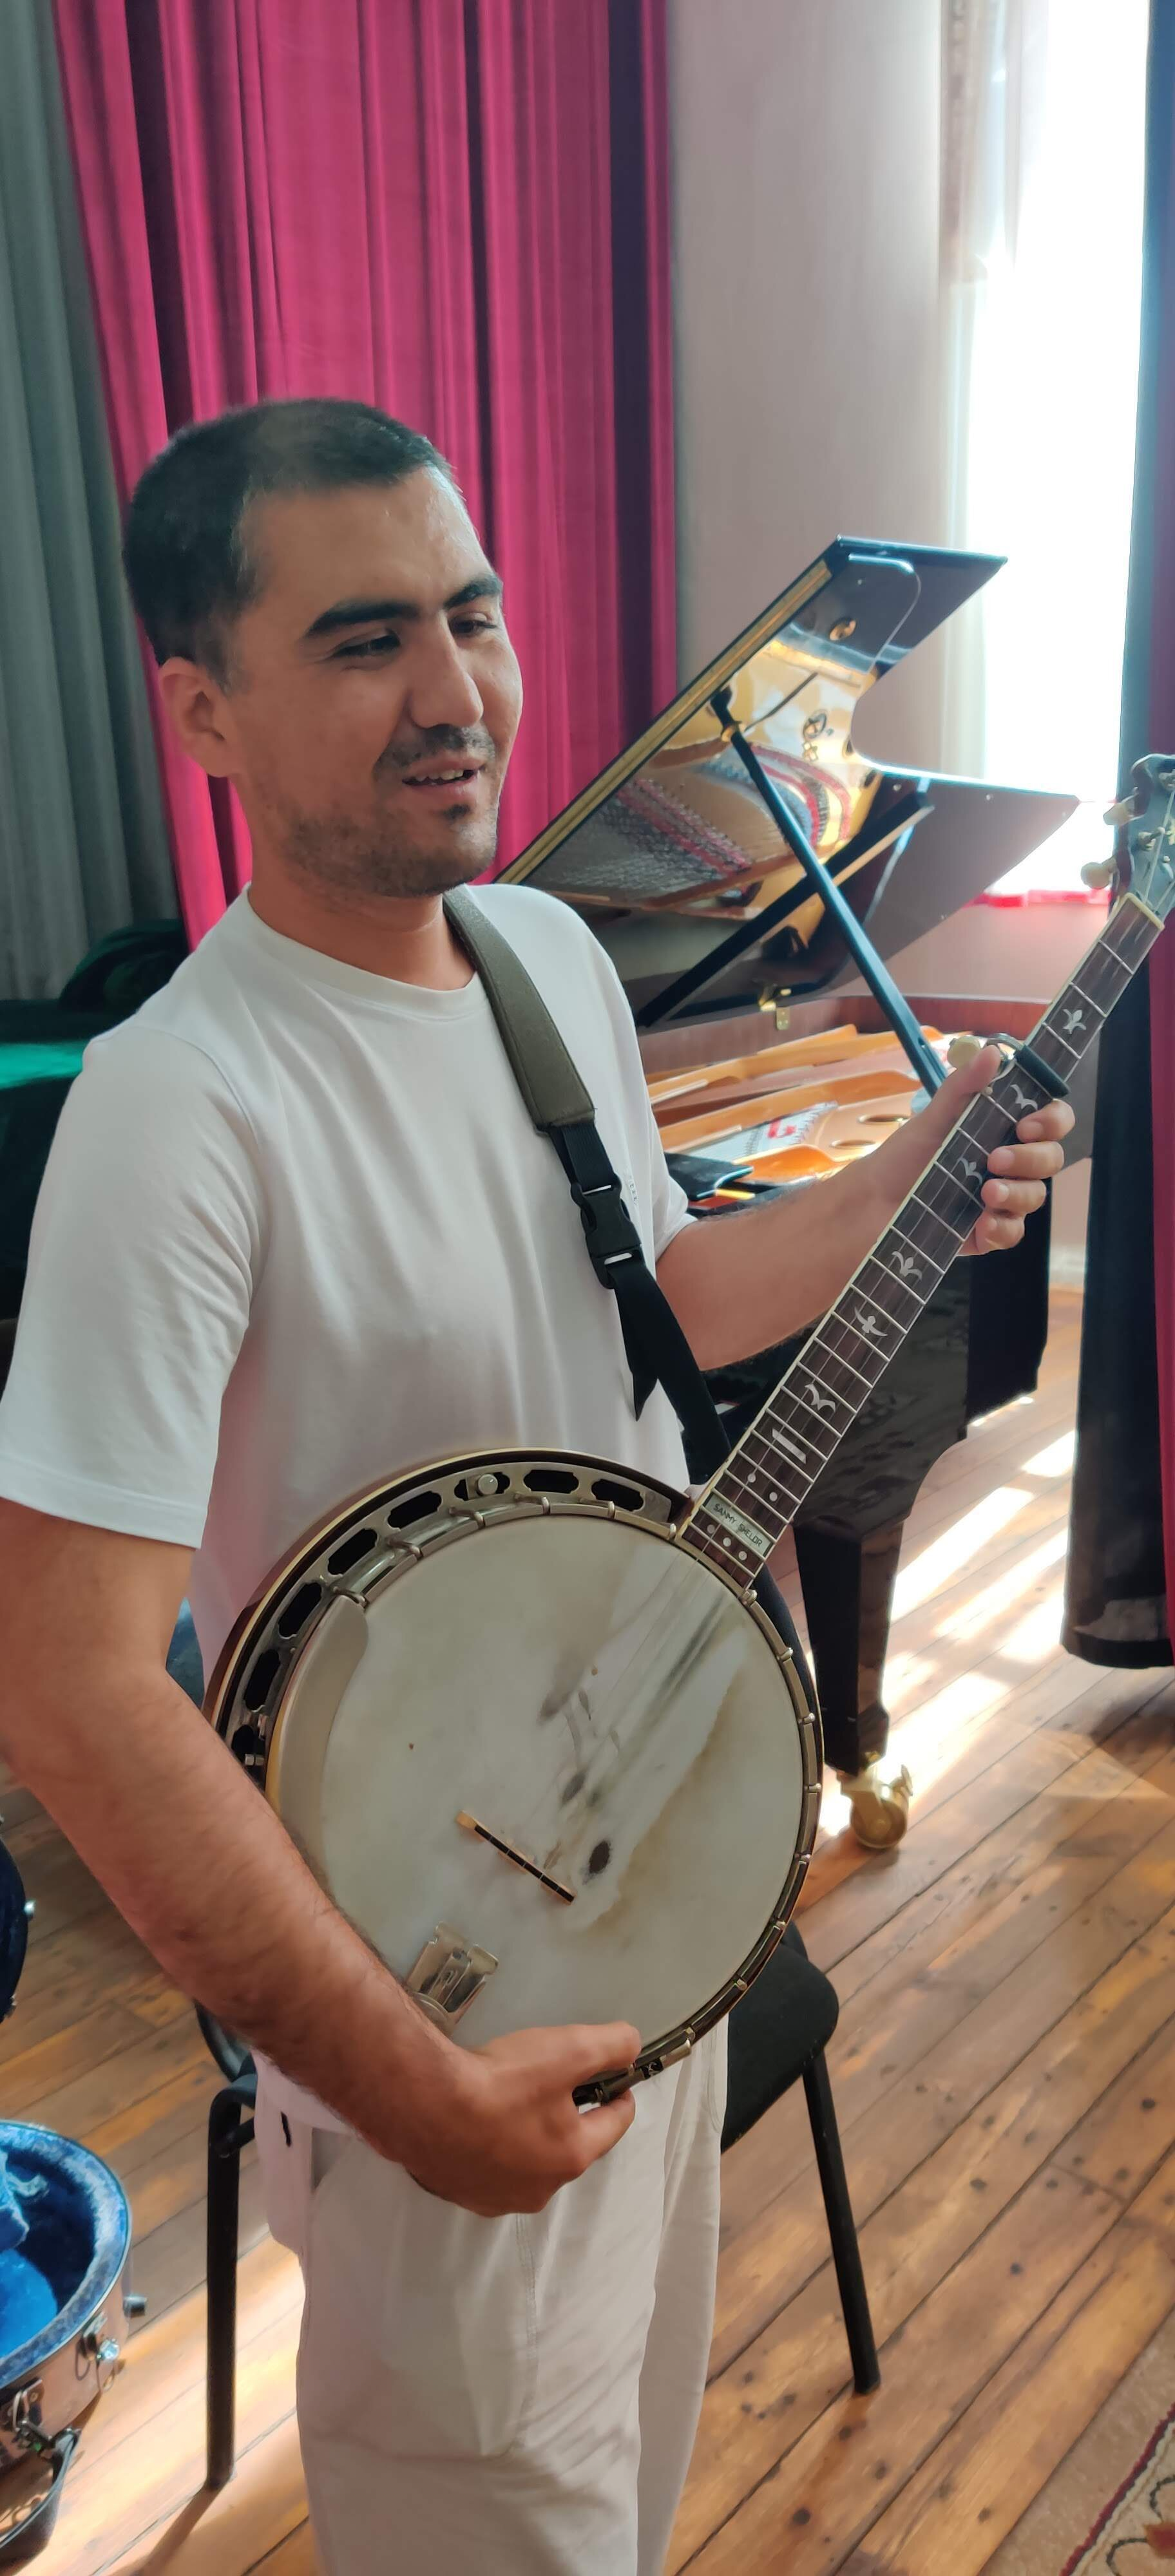 One of the teachers at the school was fascinated with the sound of the banjo and wanted to give it a try.